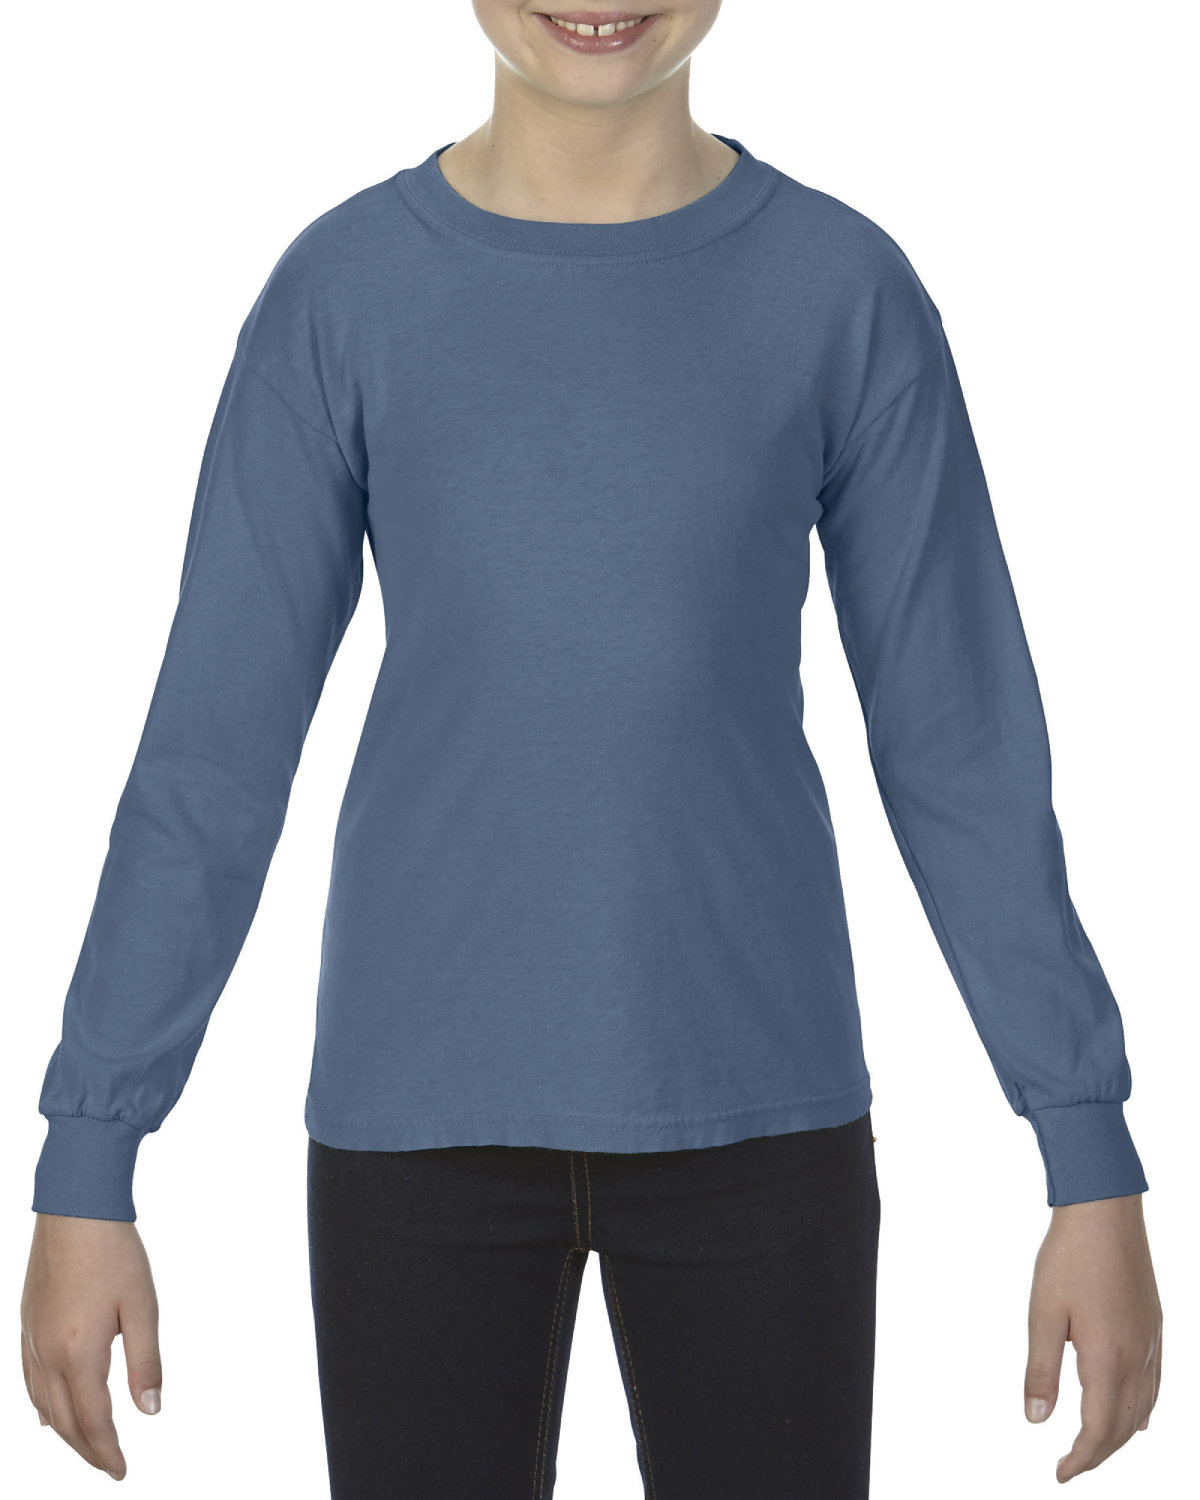 Comfort Colors Youth Garment-Dyed Long-Sleeve T-Shirt BLUE JEAN